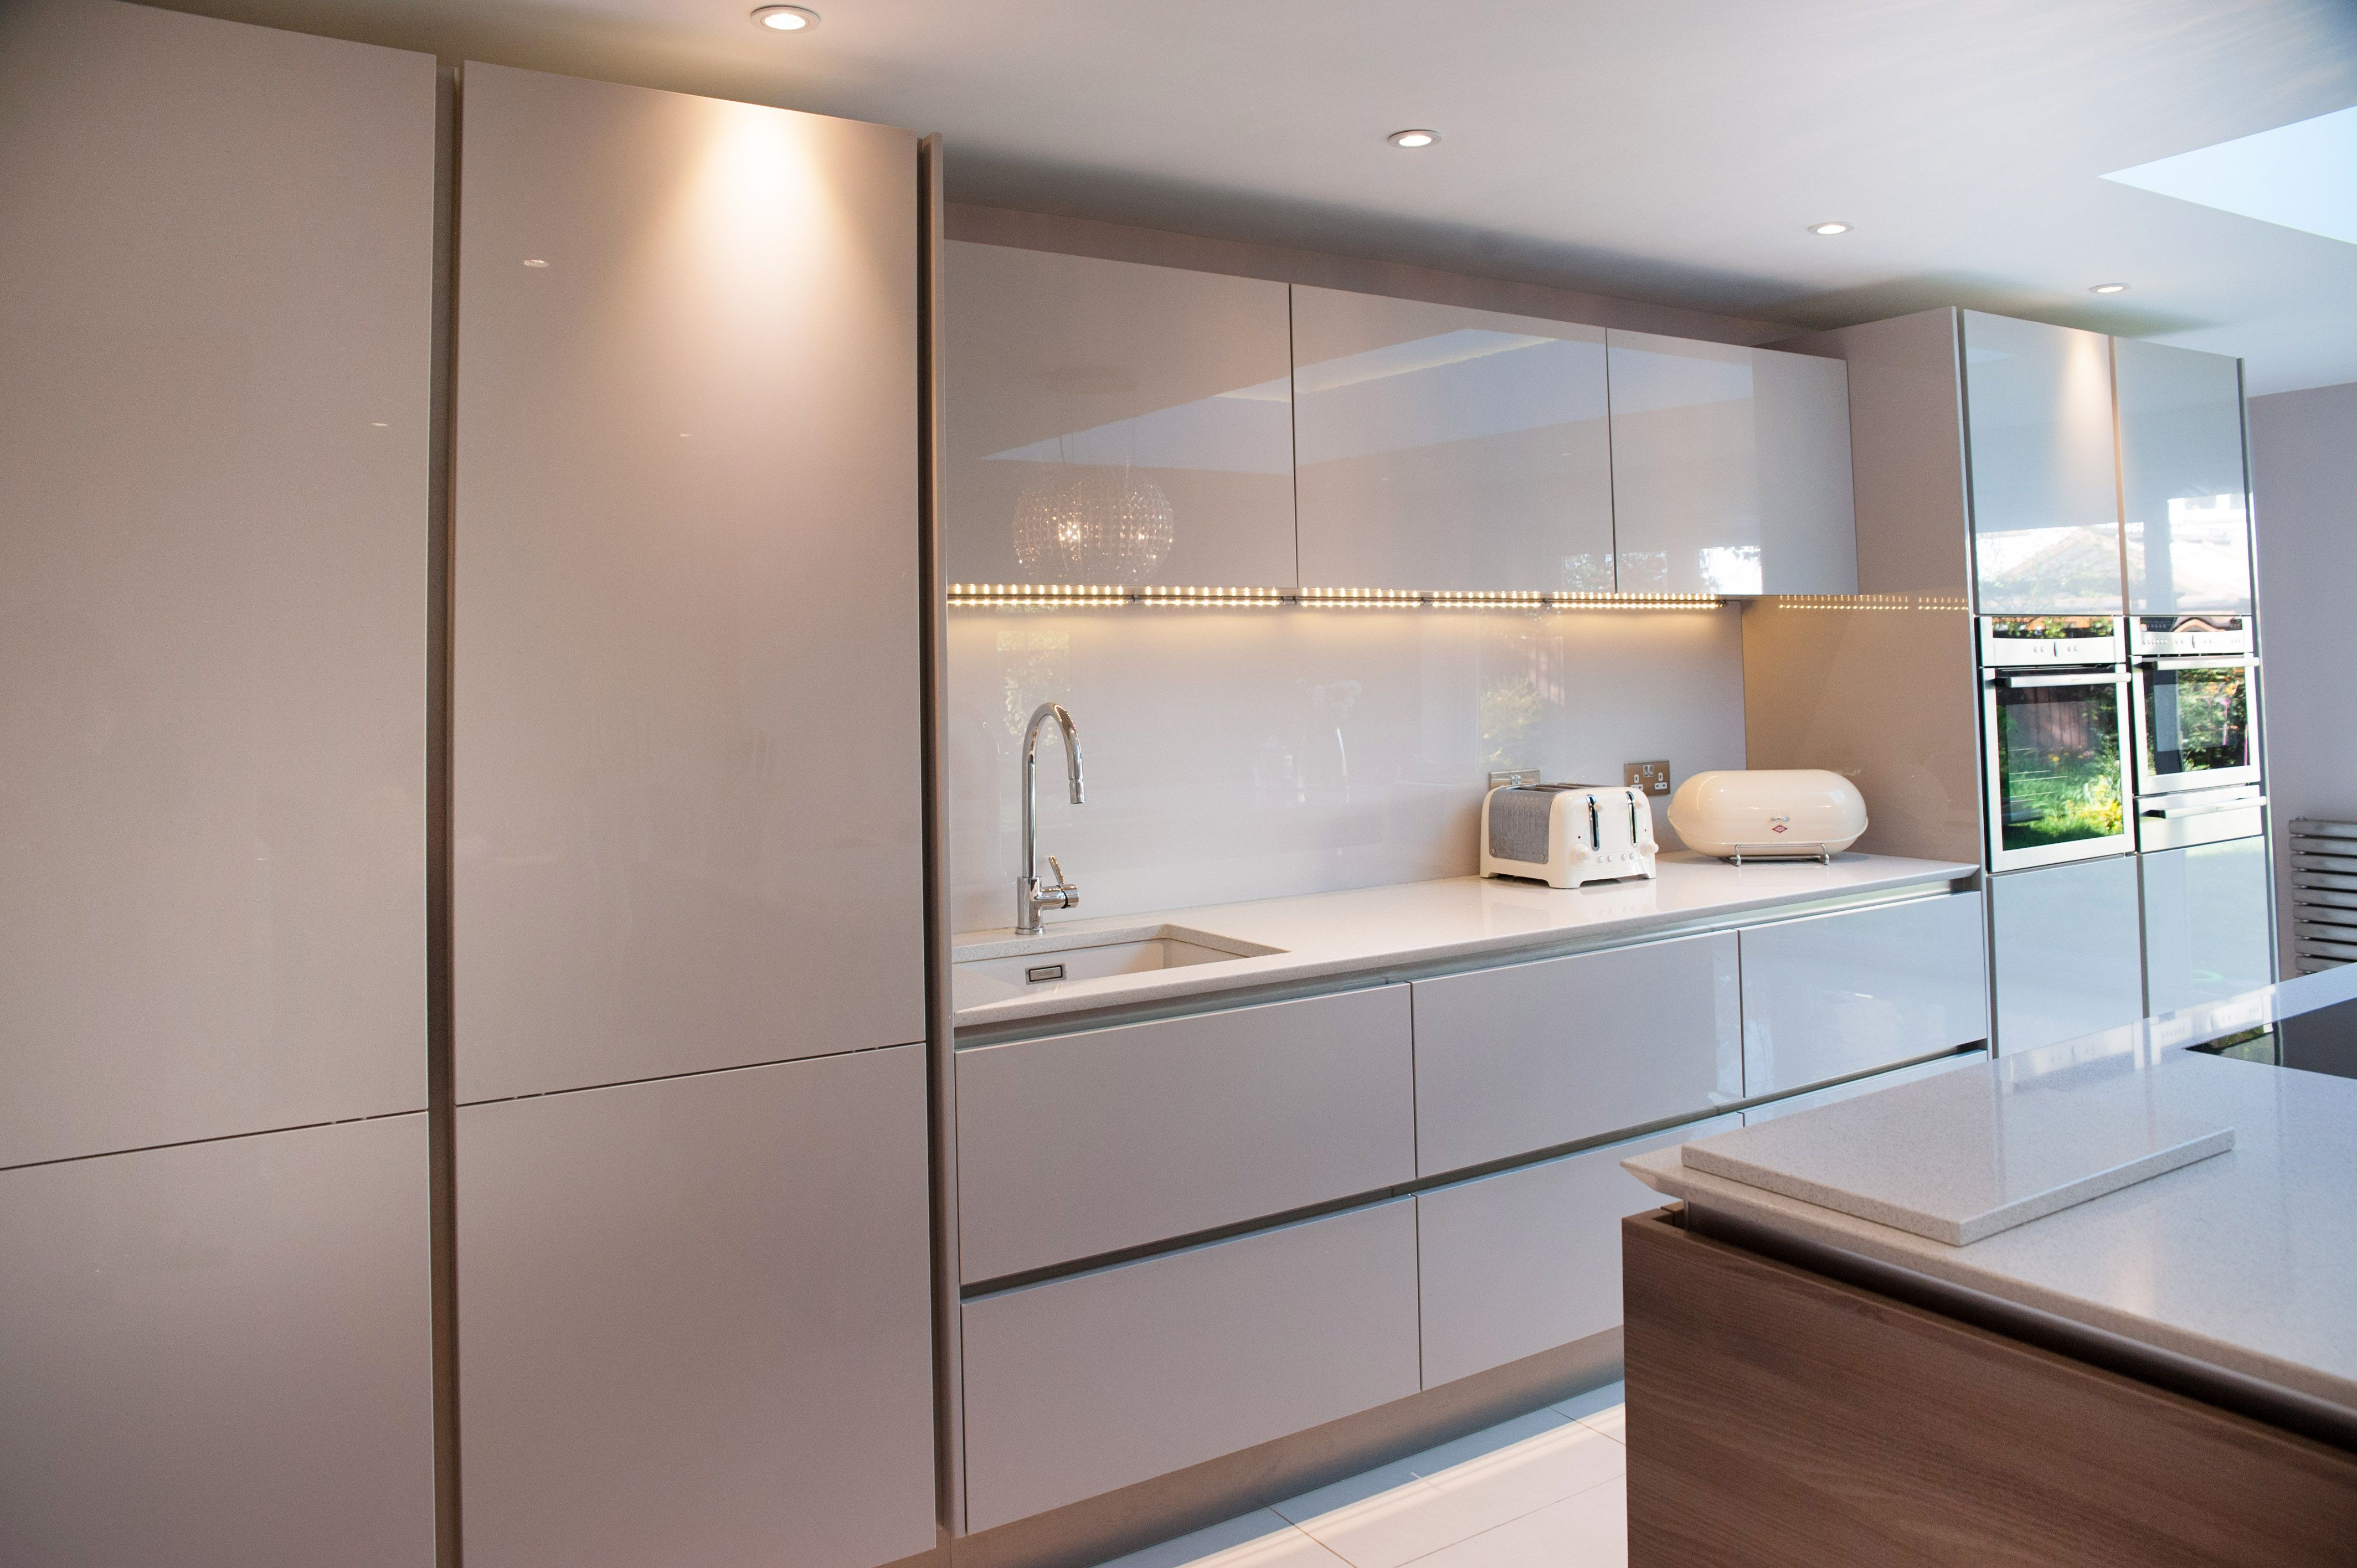 handleless white and cashmere high gloss doors with posite